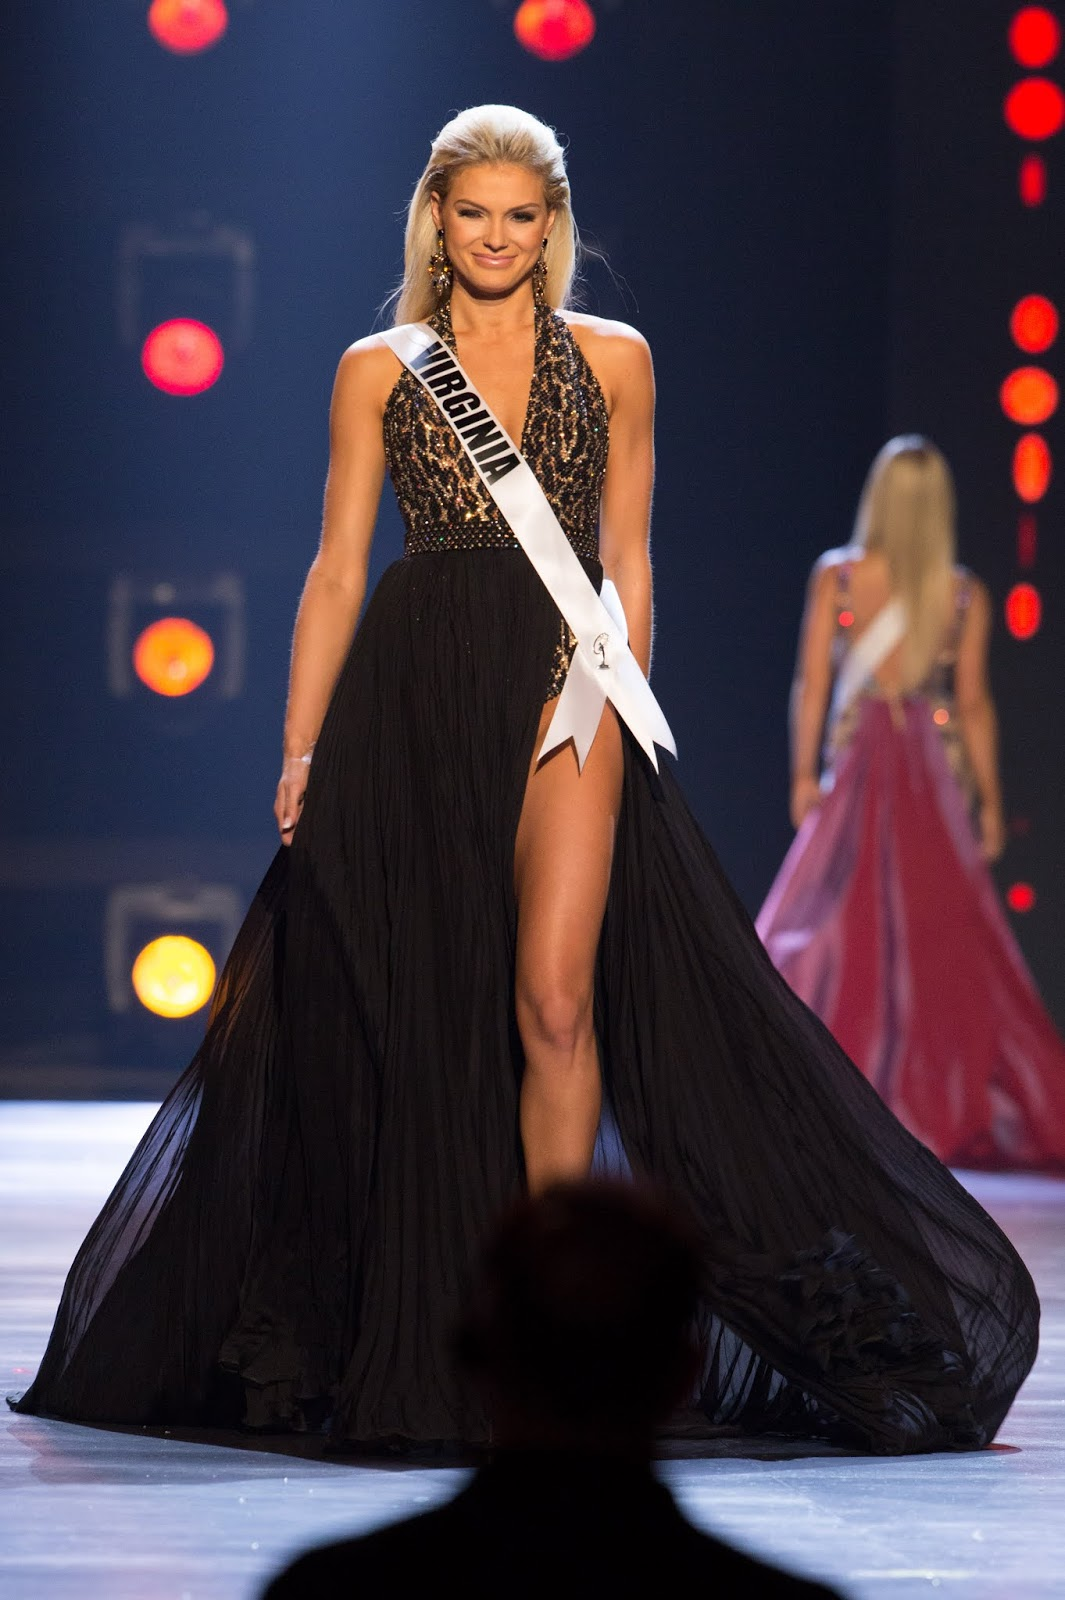 4b31446c1b Miss Tennesse looked ethereal in her Jovani champagne gown with rose gold  applique that complements her skin perfectly. Her presence on the stage  looked ...